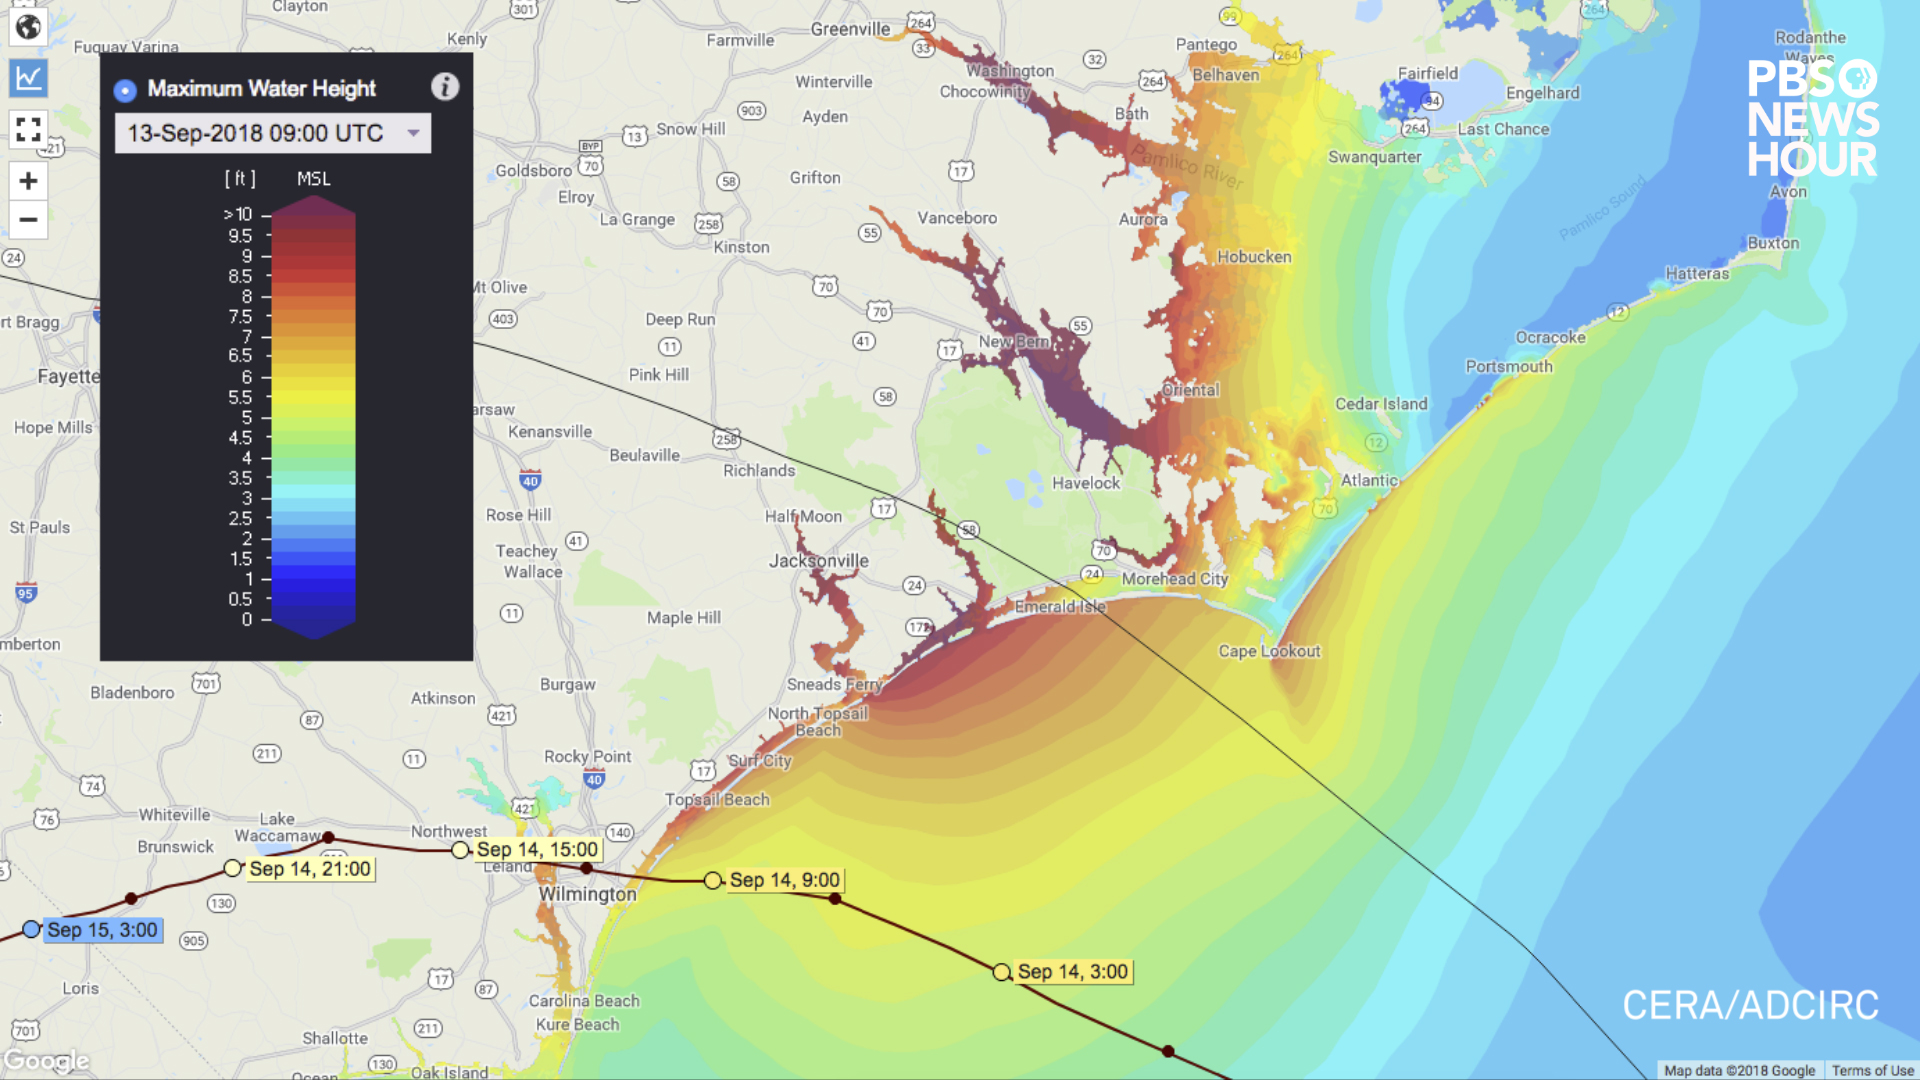 Maximum water heights caused by Hurricane Florence's storm surge as predicted by the ADCIRC computer model. Projections as of 5:00am EST on September 13, 2018.